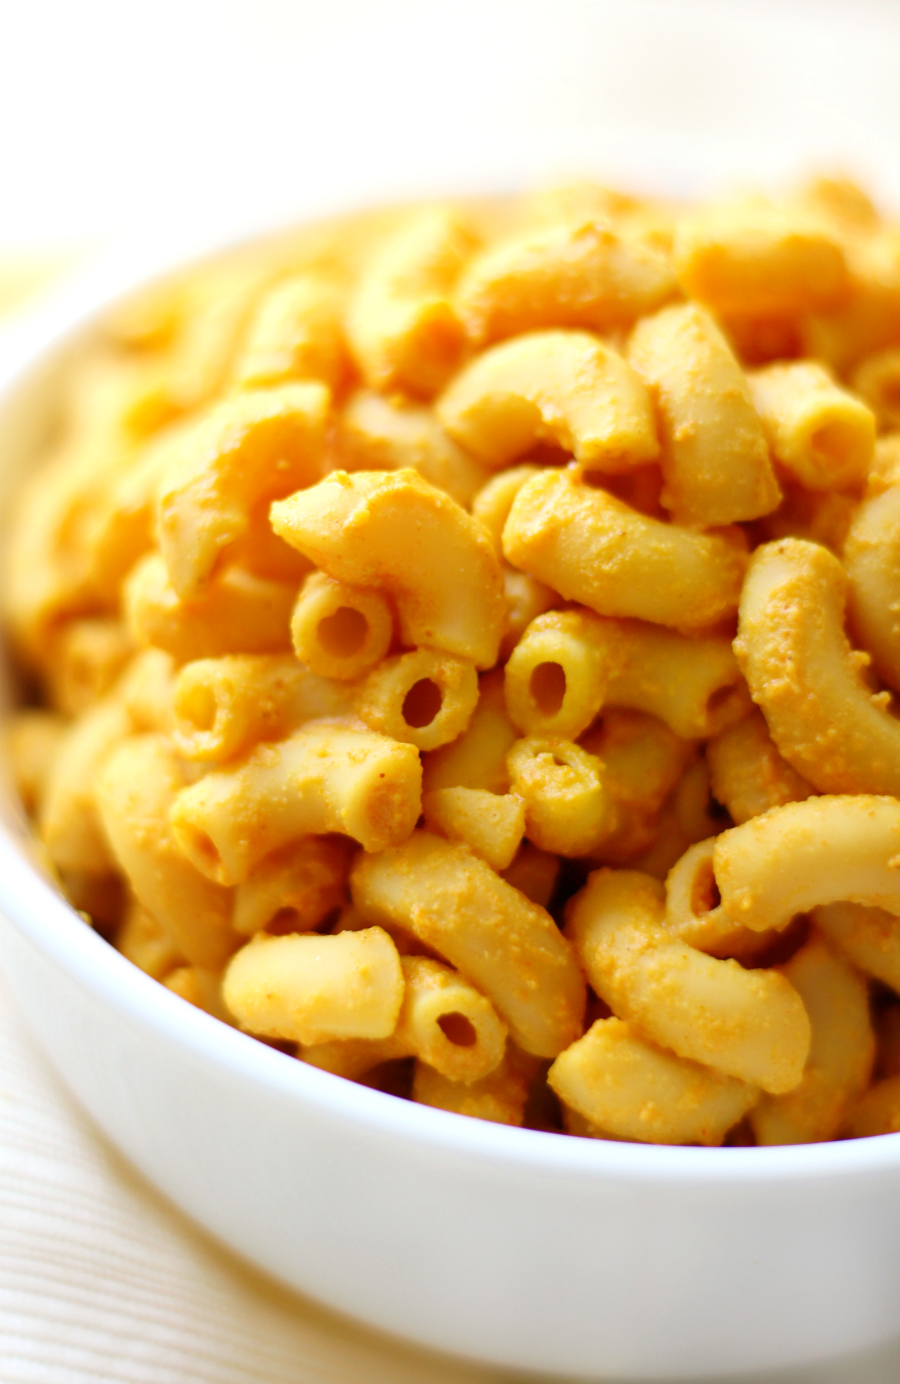 One Pot Vegan Mac & Cheese | Strength and Sunshine @RebeccaGF666 Easy one-pot vegan mac & cheese that's gluten-free, grain-free, and nut-free! The perfect quick, healthy, protein-packed dinner recipe, ready in less than 10 minutes, making it one weeknight family favorite where moms and kids approve!